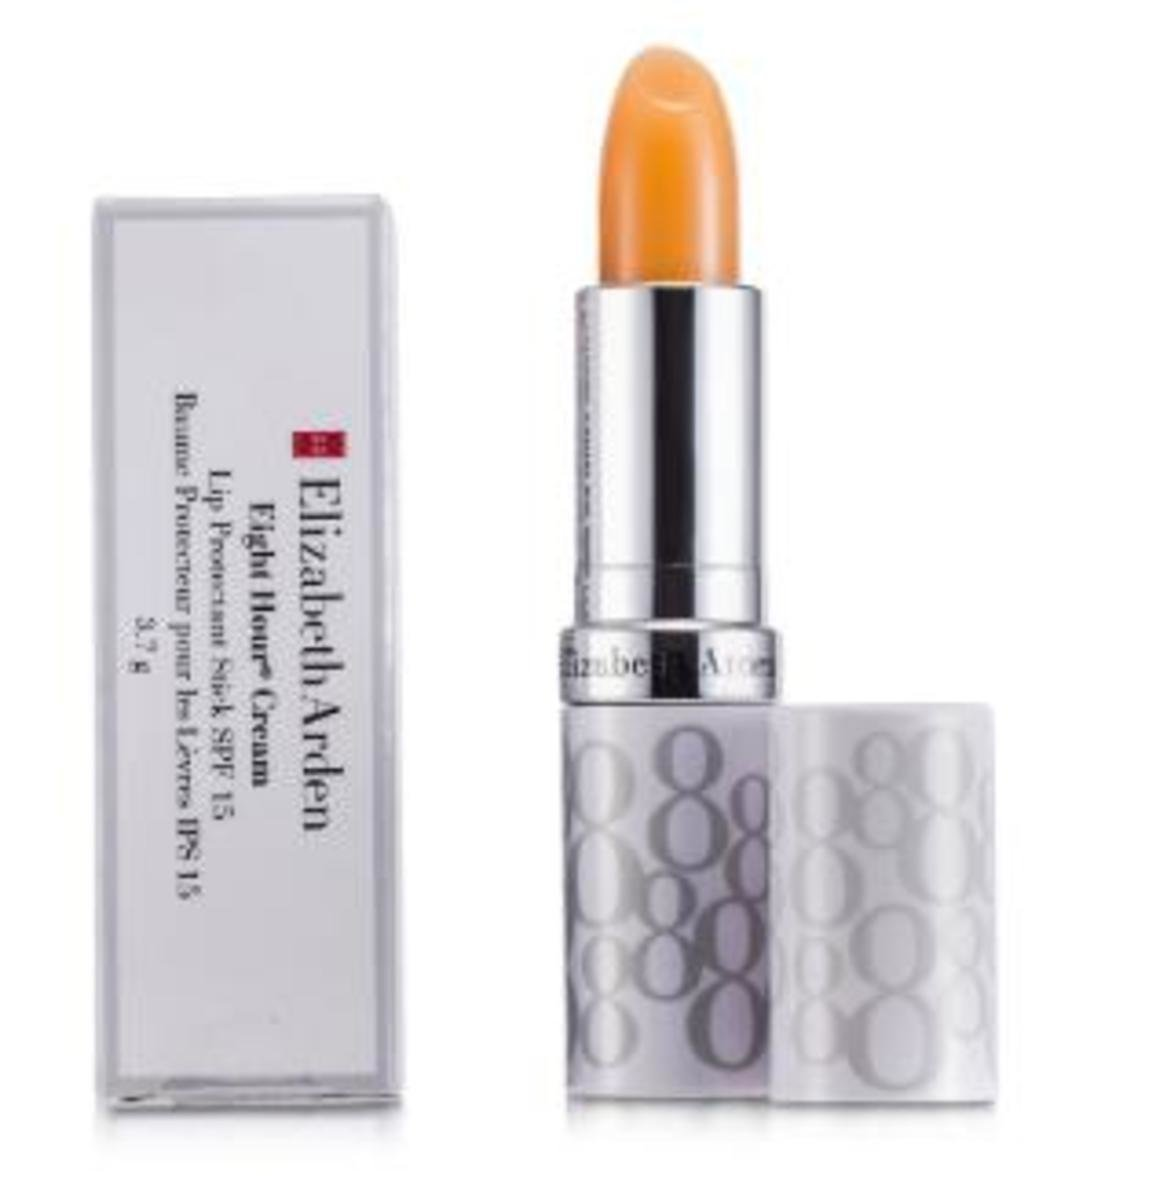 Eight Hour Cream Lip Protectant Stick SPF15 3.7g - [Parallel Import]